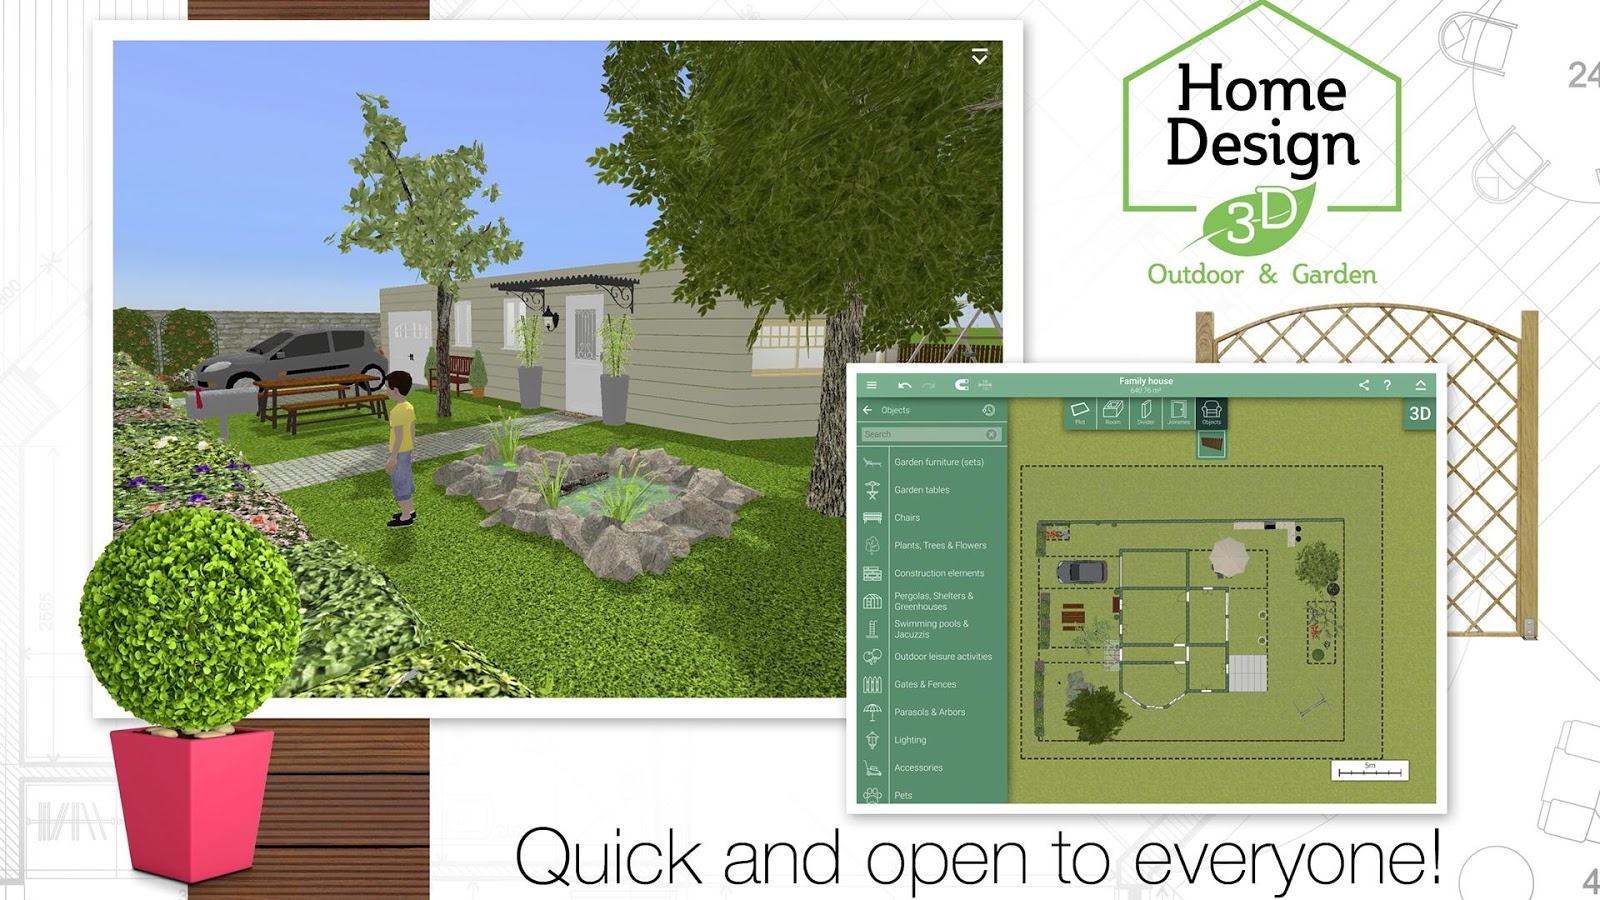 Home design 3d outdoor garden android apps on google play House and garden online